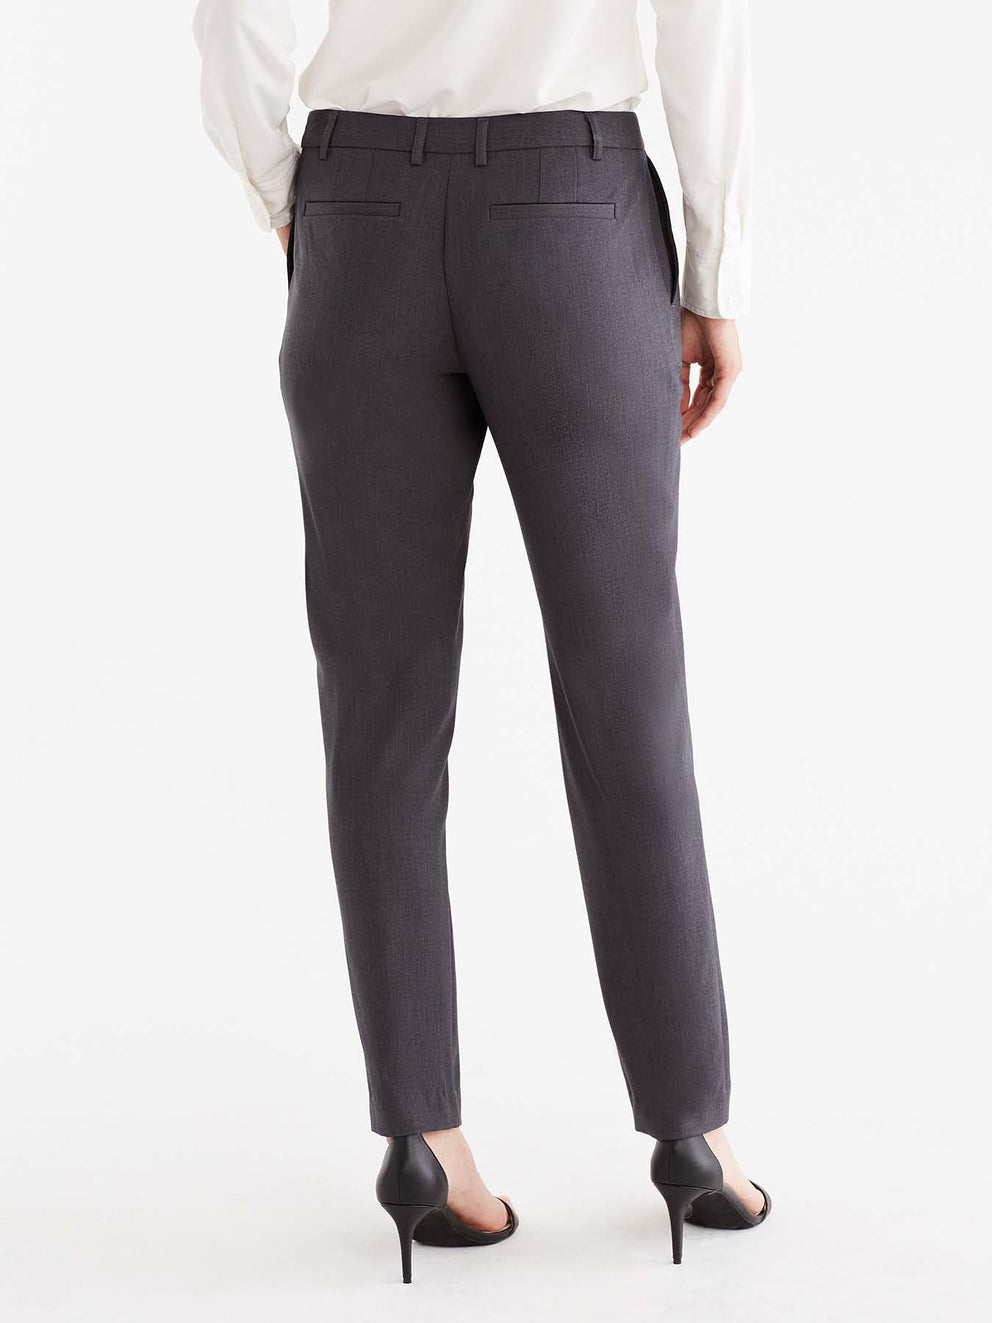 The Jones New York Grace Full-Length Pant in color Charcoal - Image Position 5